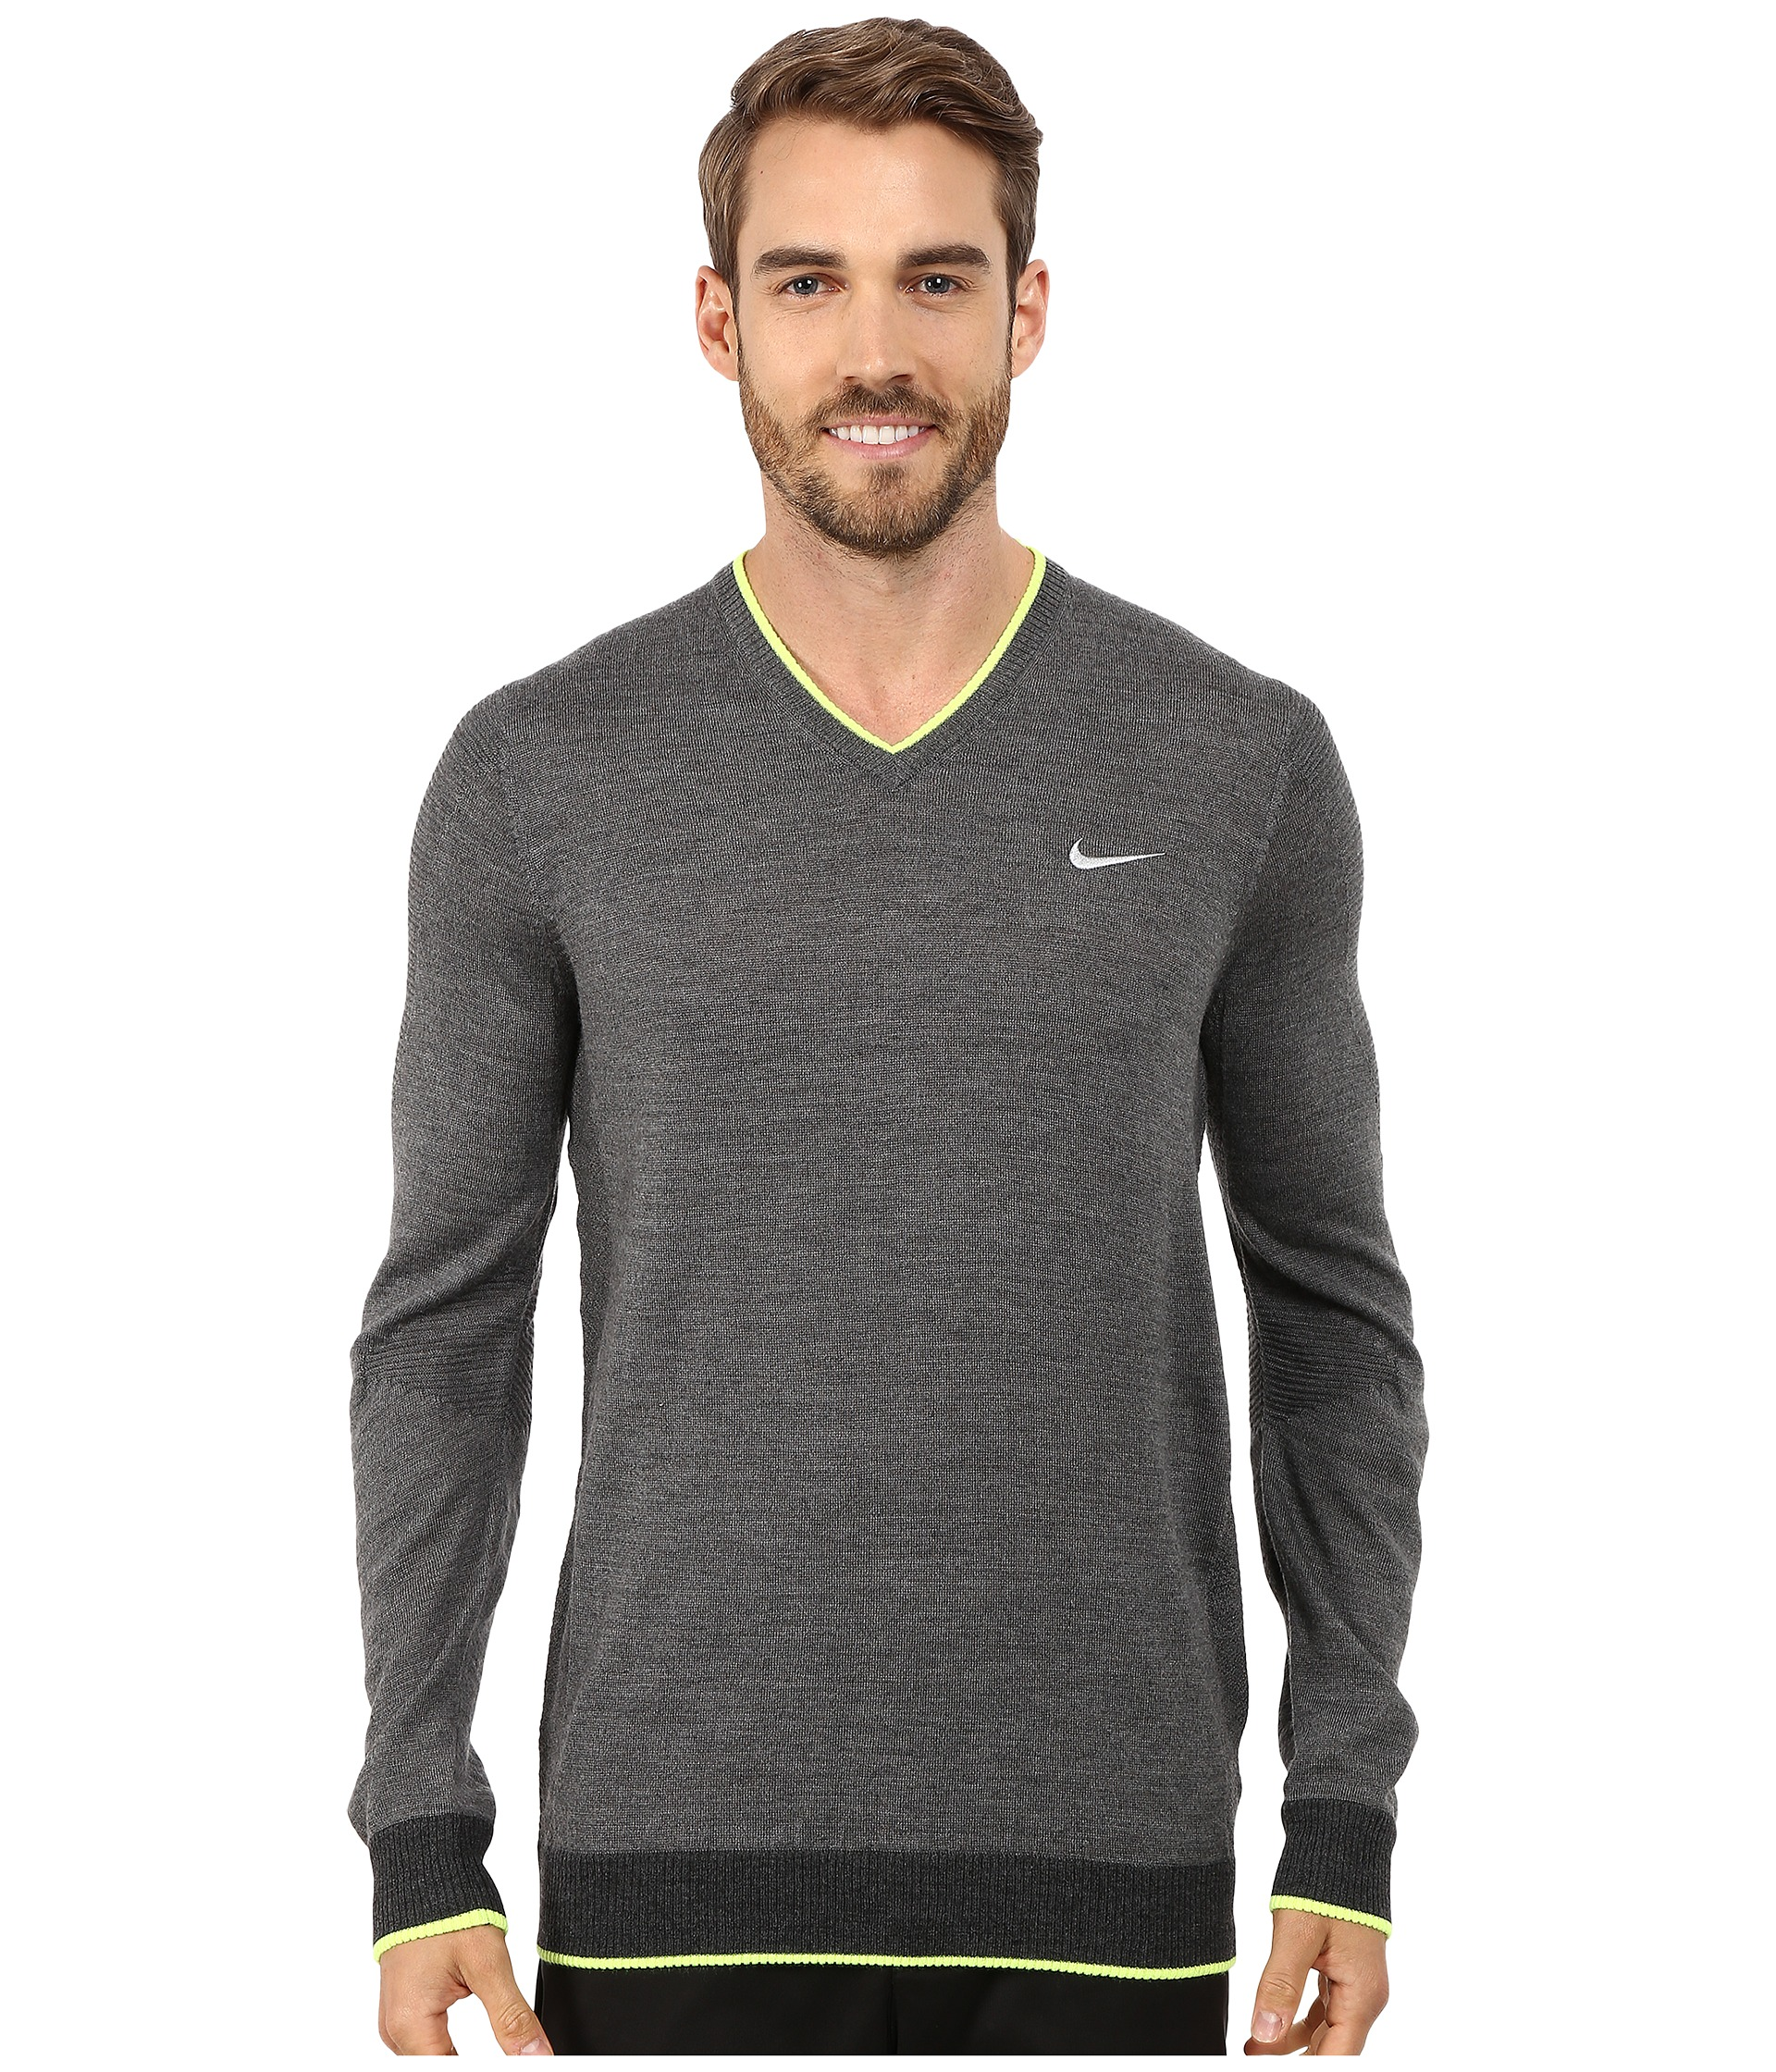 Knitting Patterns For Golf Jumpers : nike golf engineered knit 3d sweater